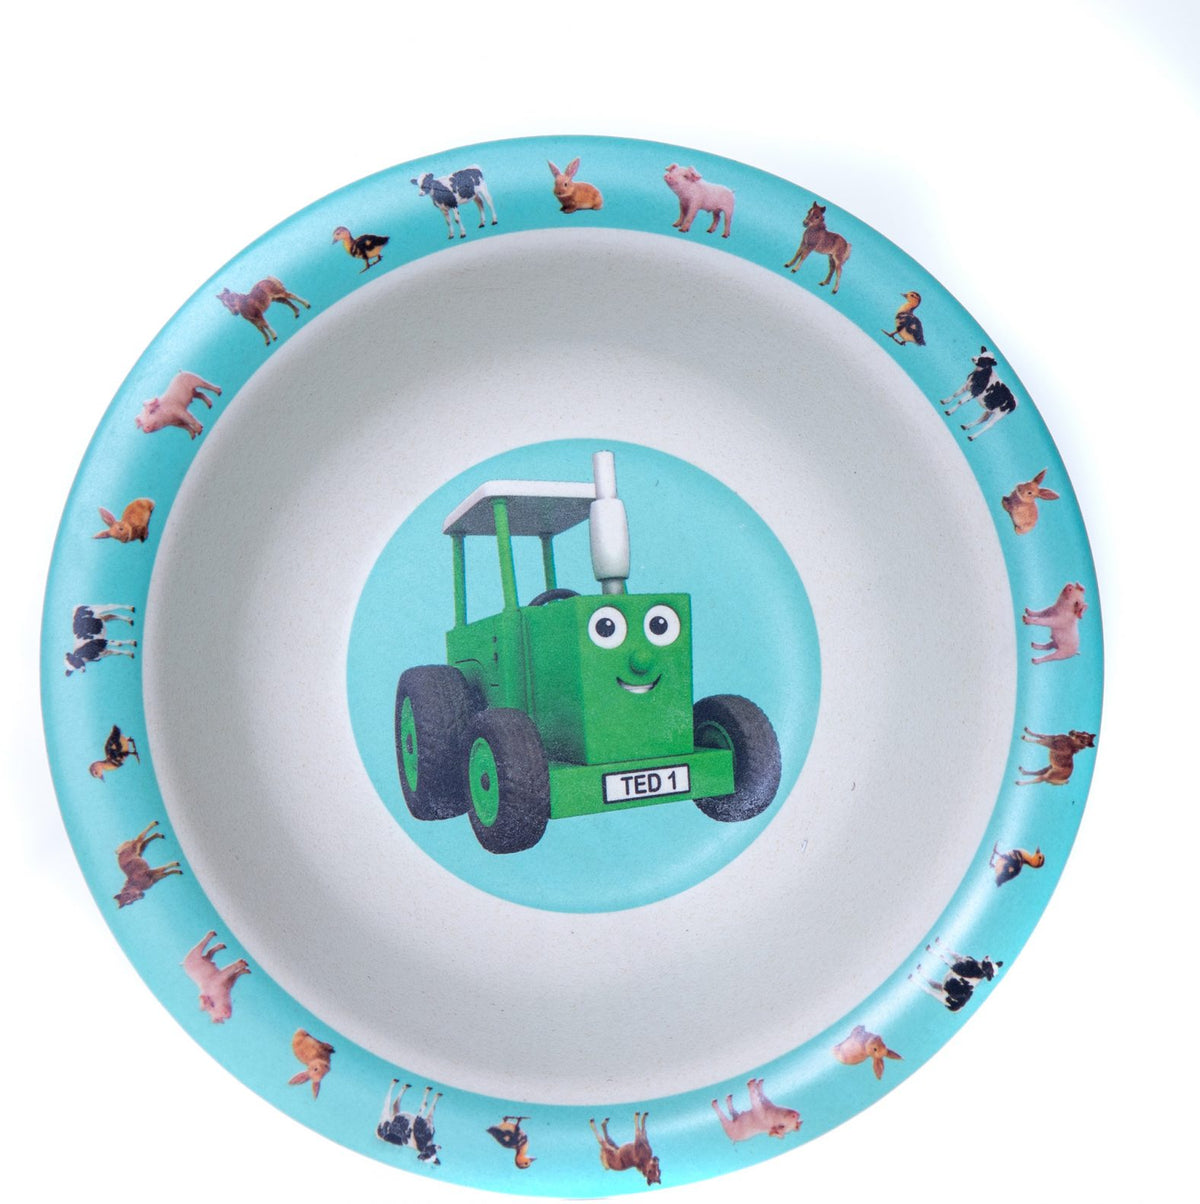 Tractor Ted Bamboo Bowl, Baby Animals